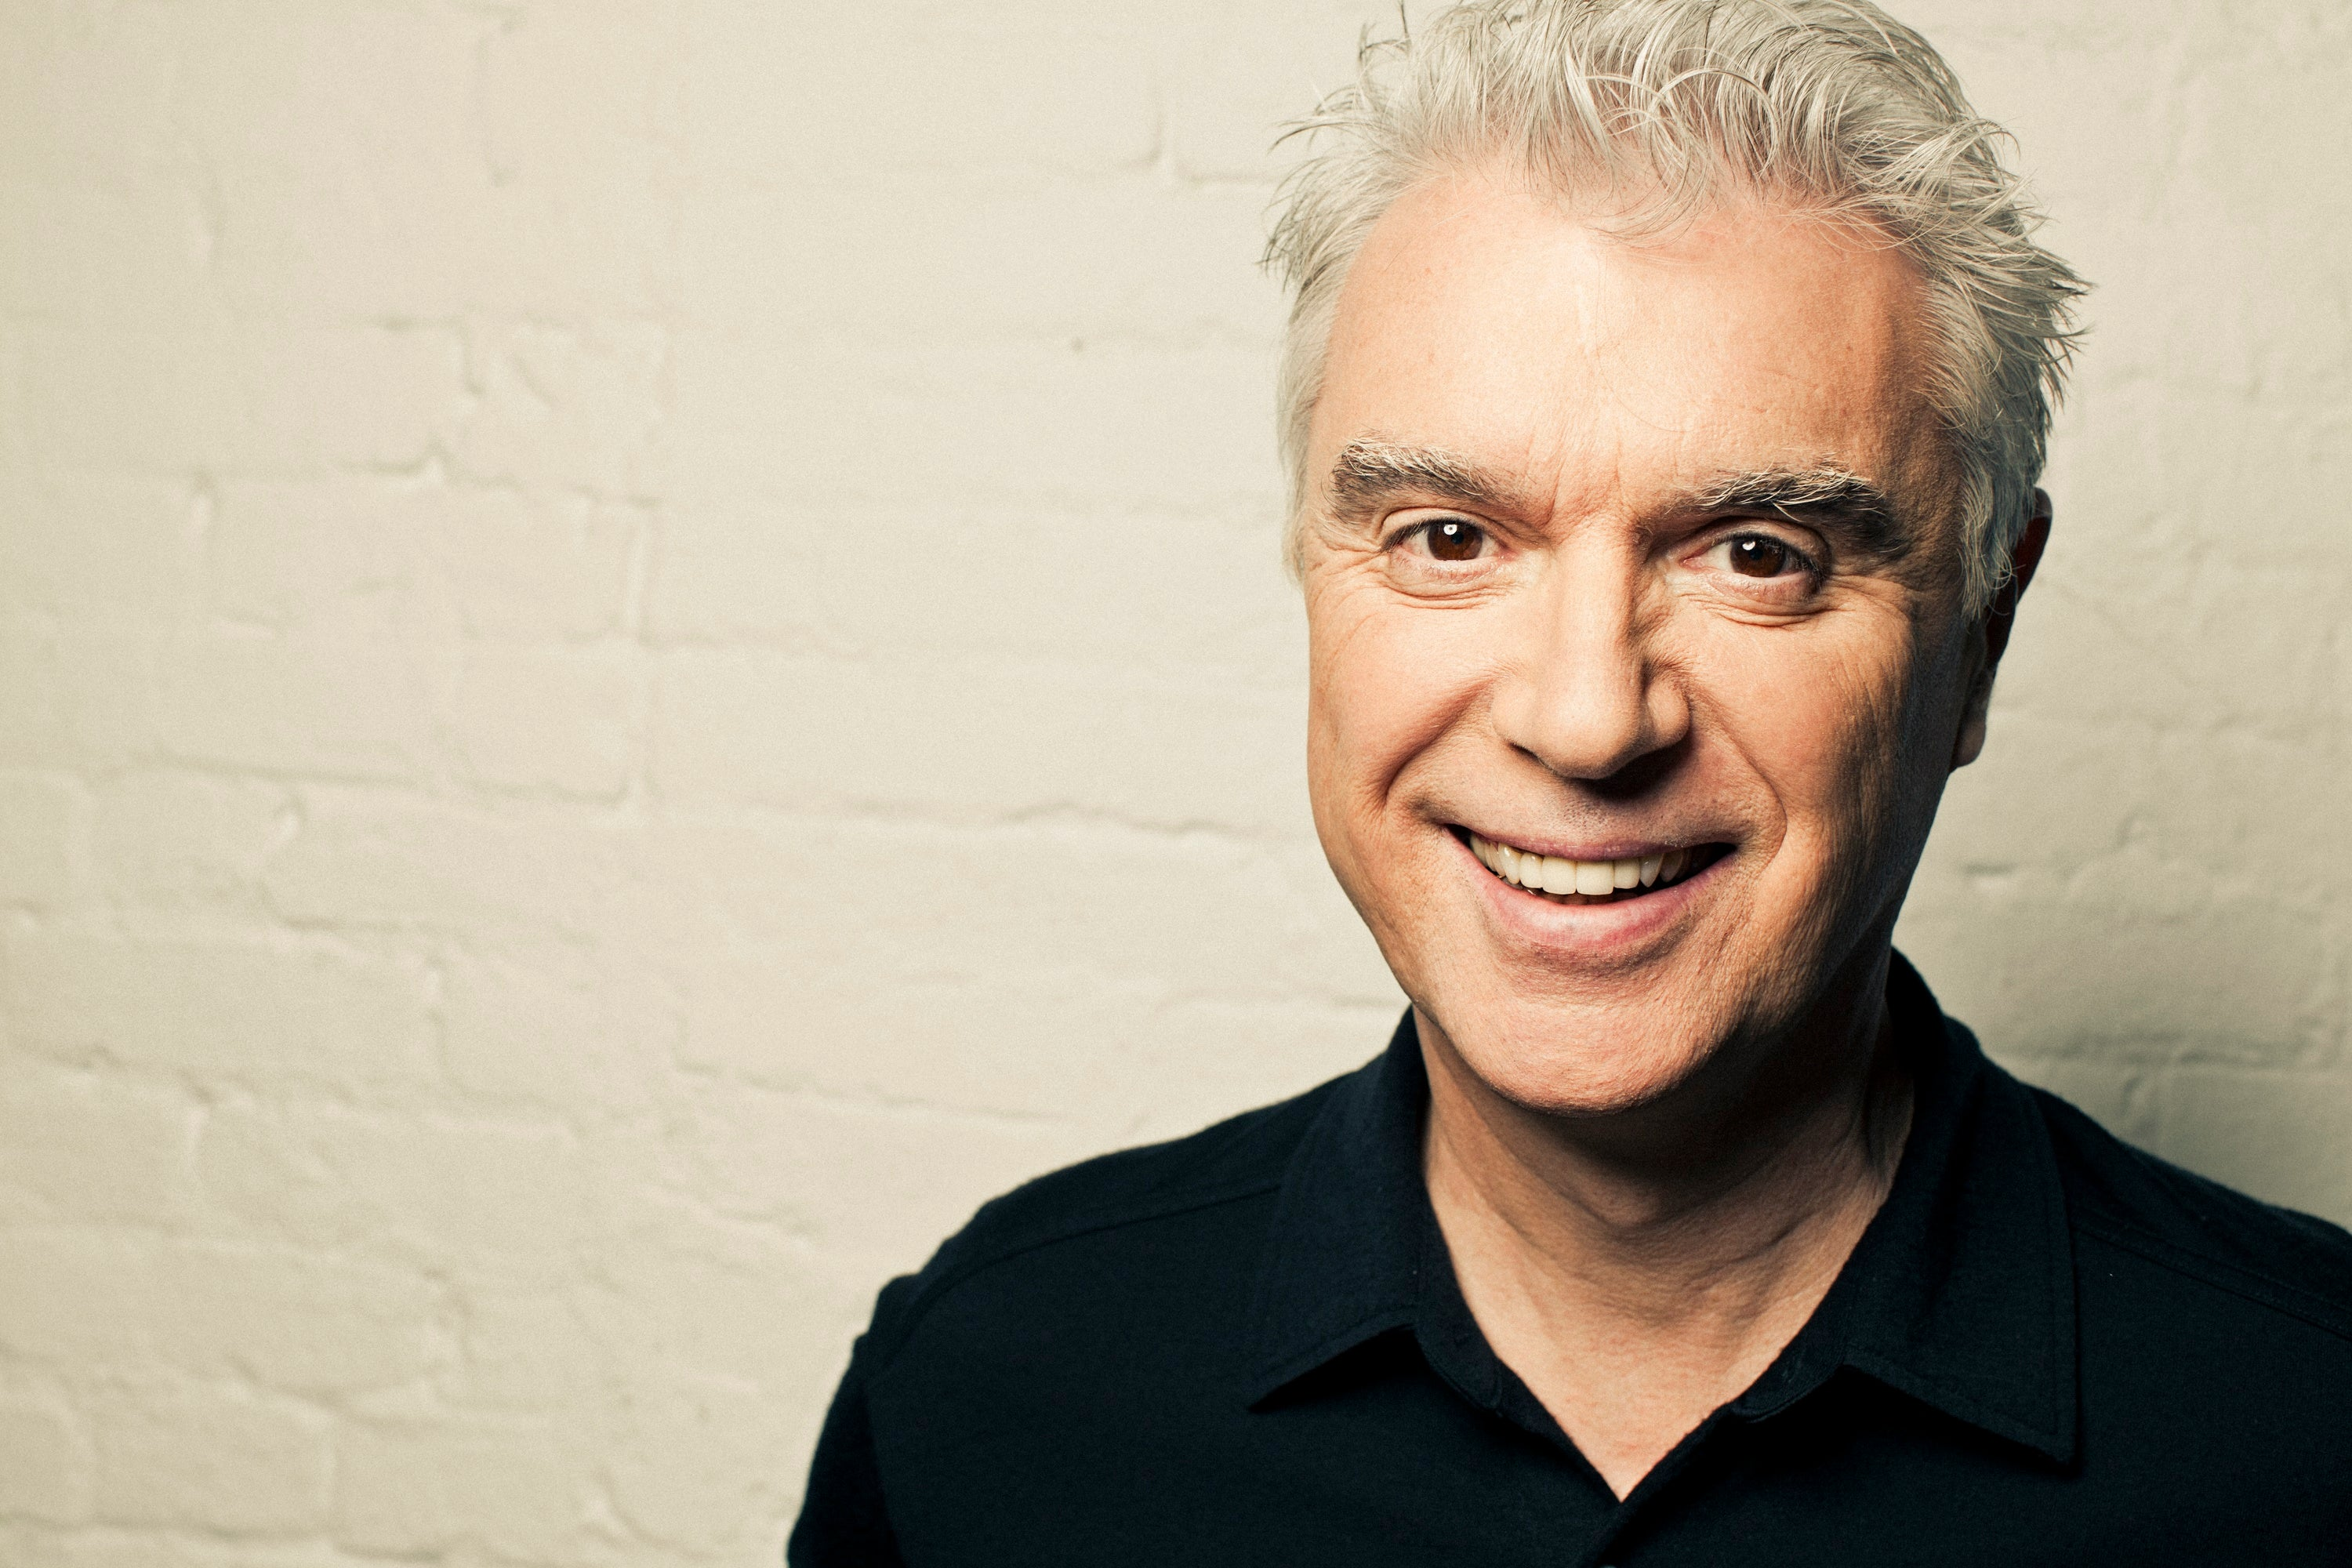 Tips: David Byrne, 2018s dressy hair style of the cool talented  musician